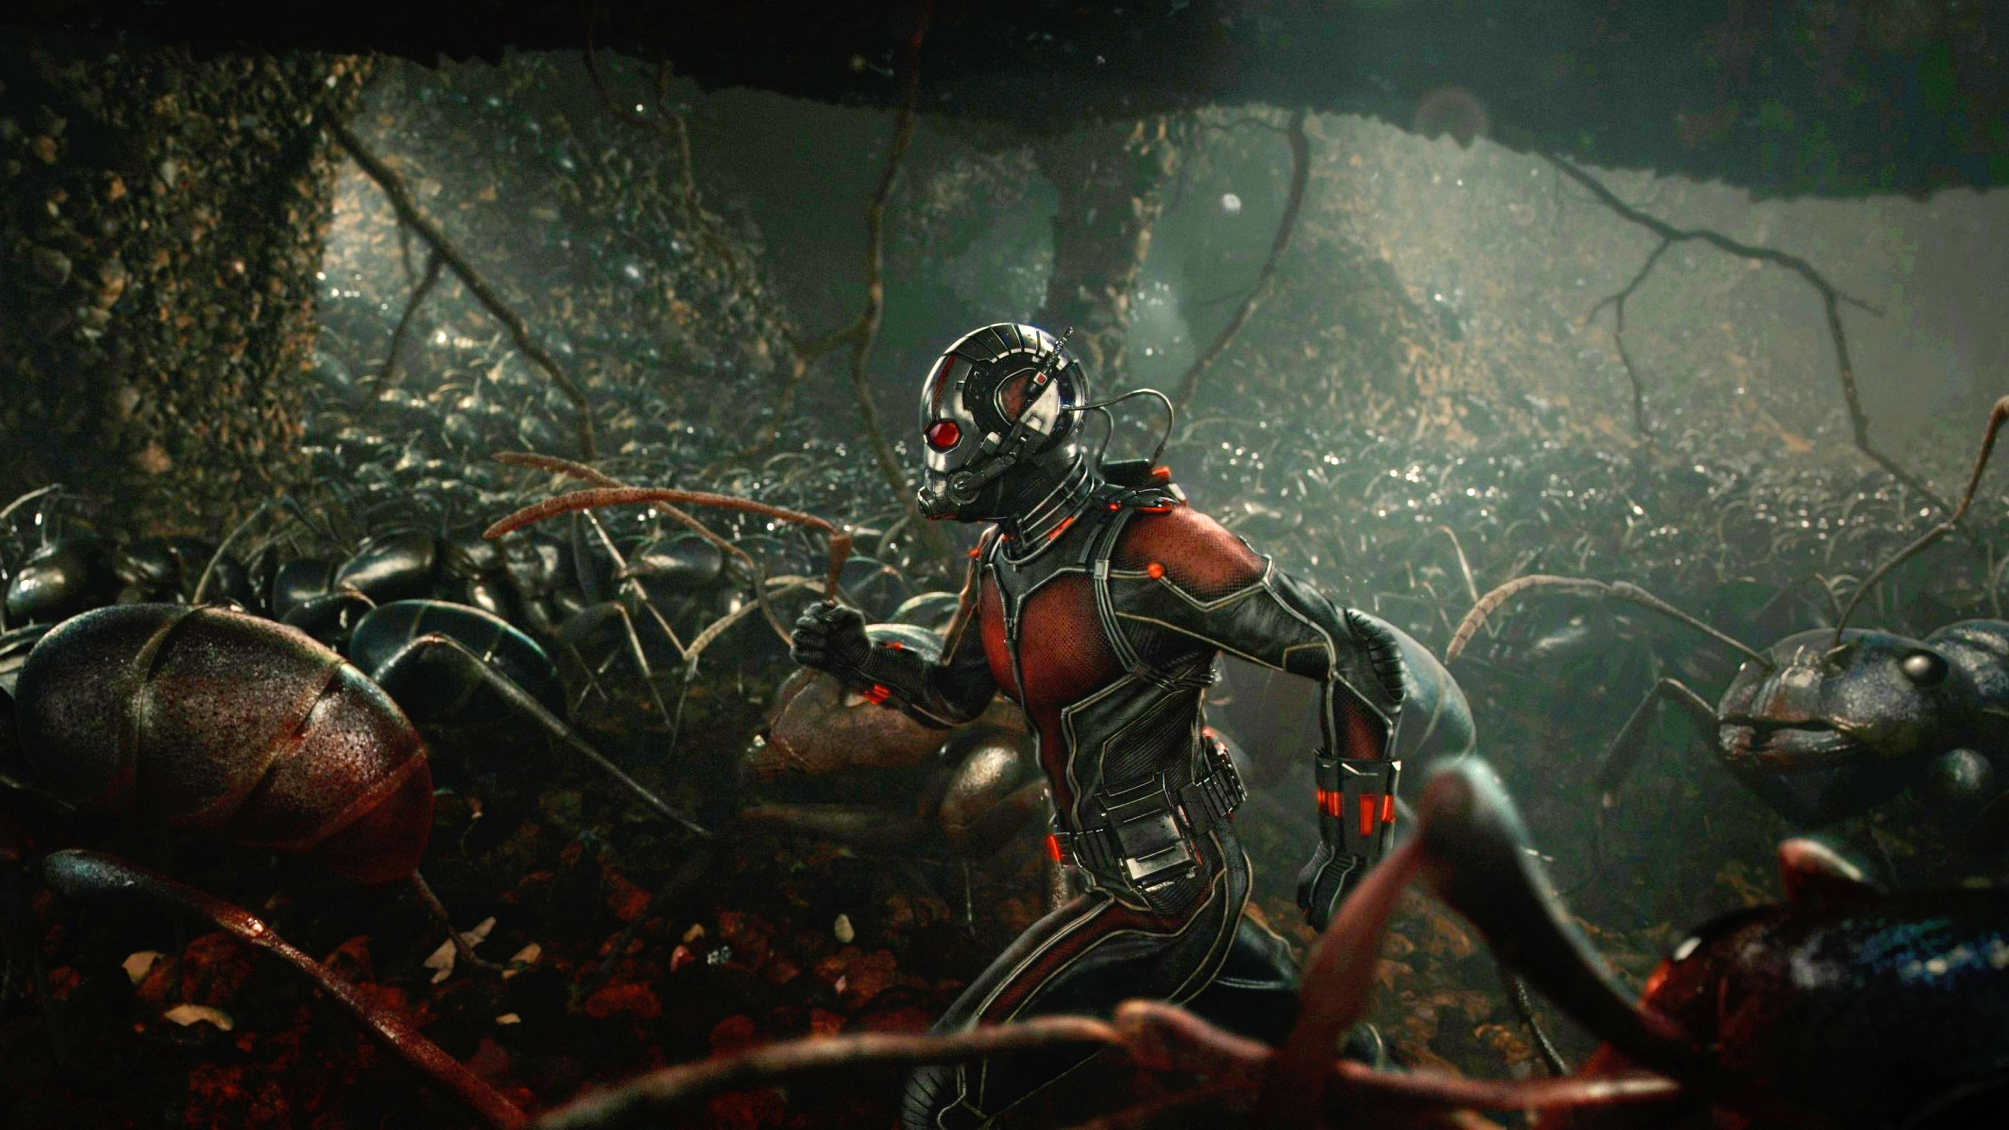 Can Ant-Man and The Wasp Exist Without the Avengers?